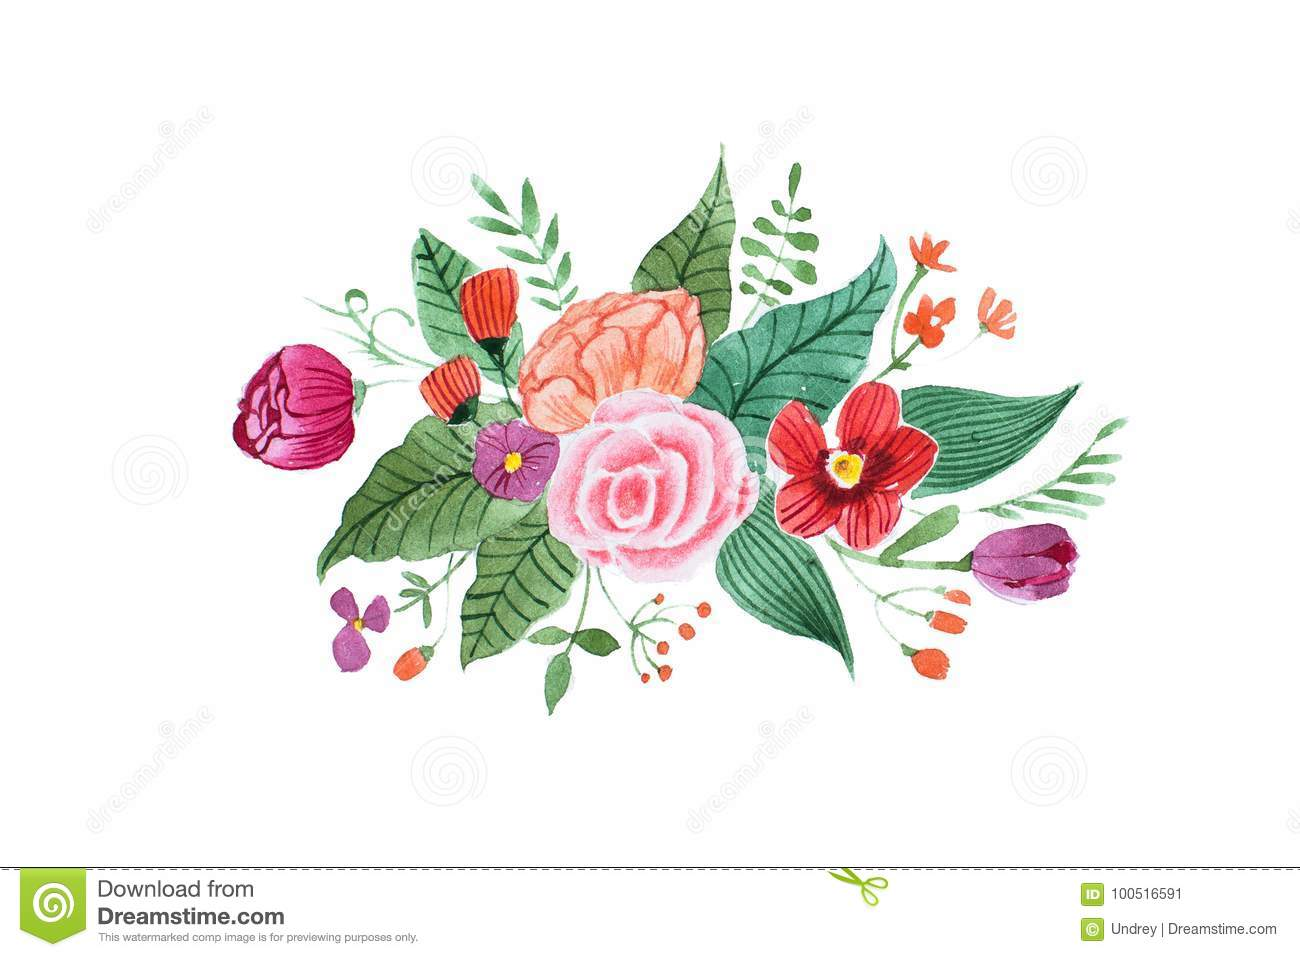 Aquarelle Drawing Of Pretty Little Bouquet Made Of Various Red